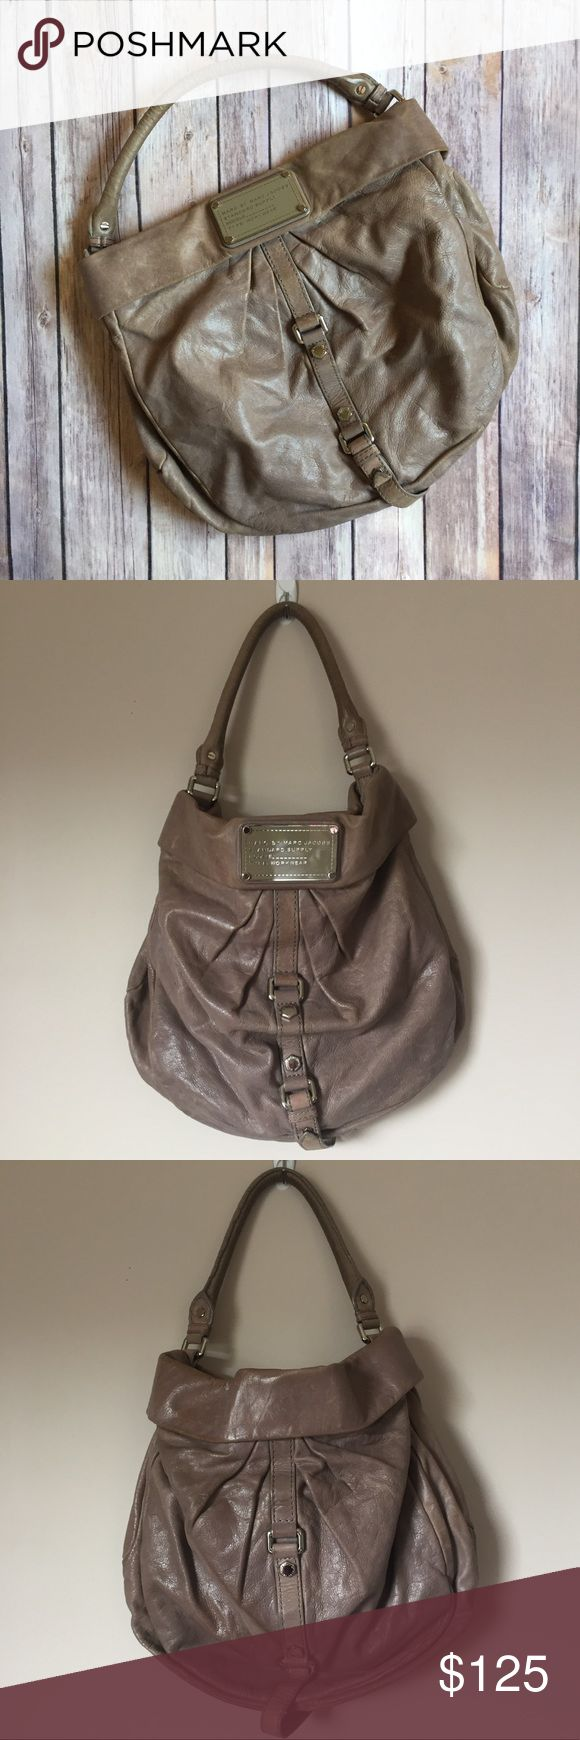 """MARC BY MARC JACOBS Standard Supply Workwear Sac MARC BY MARC JACOBS Standard Workwear Sac. Color: Taupe, genuine leather. Silver hardware and belted detail on front/back of bag. Magnetic closure. Green & black lining. Leather key holder. Large interior zipper pocket, 2 slip pockets. Approx 14""""L x 14""""H x 6""""D and 6"""" strap drop. Purchased at Bloomingdales. GUC, used a handful of times and has minor leather wear but not really noticeable because of the beautiful supple nature of the leather…"""